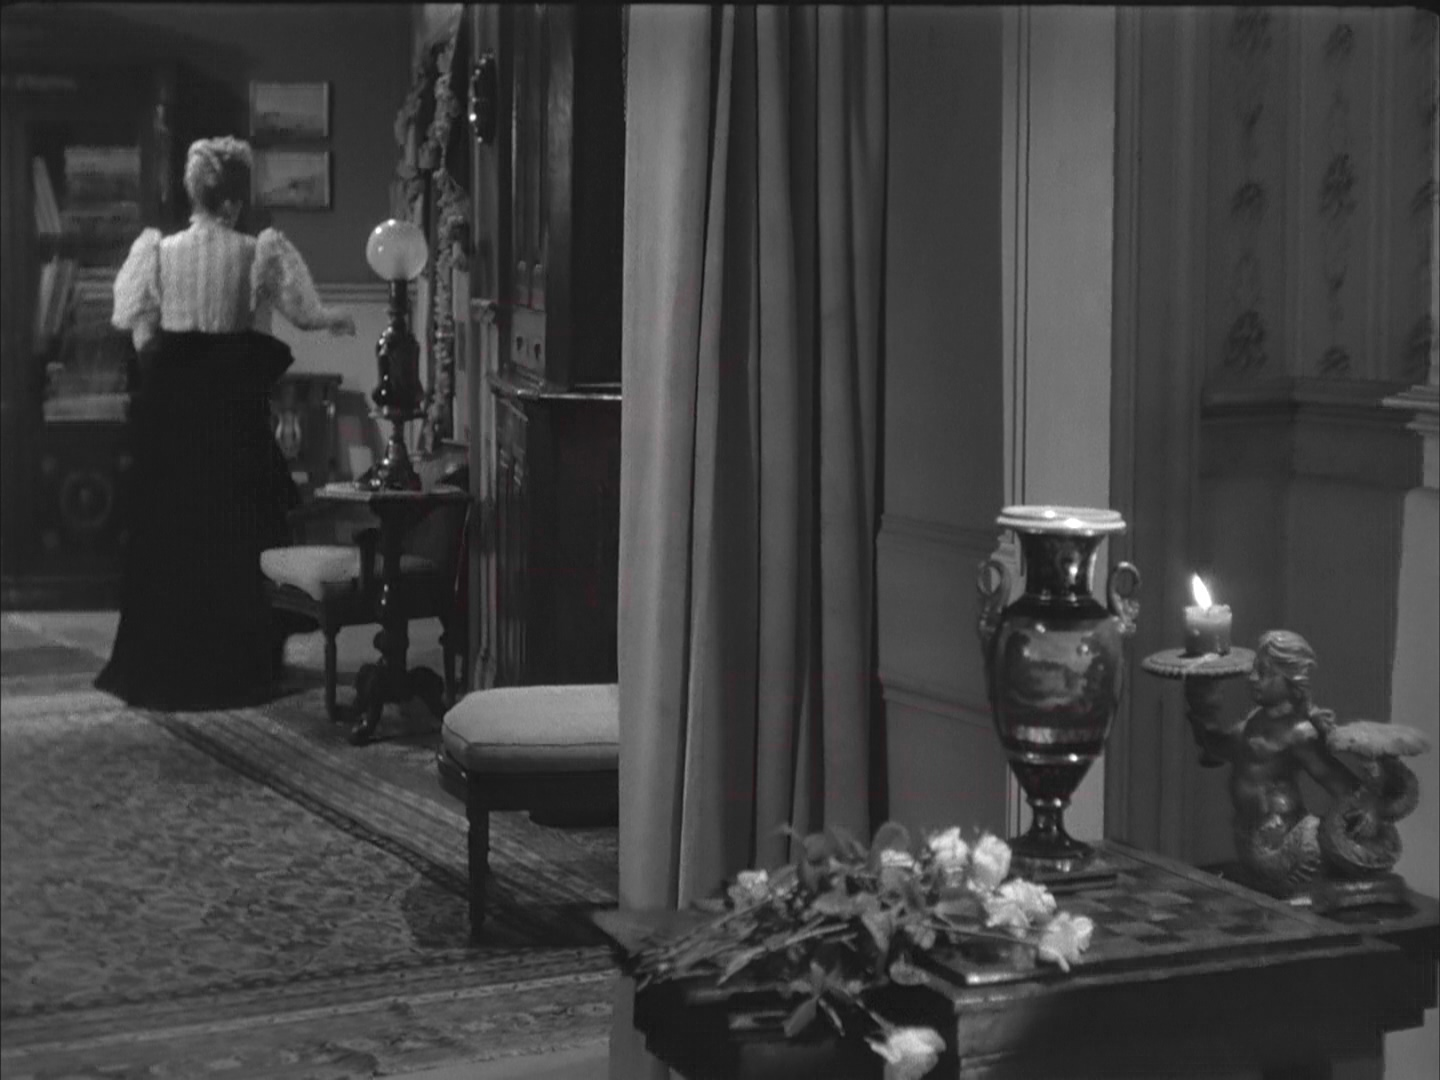 letter.from.an.unknown.woman.1948.1080p.bluray.x264-psychd.mkv_011922.501